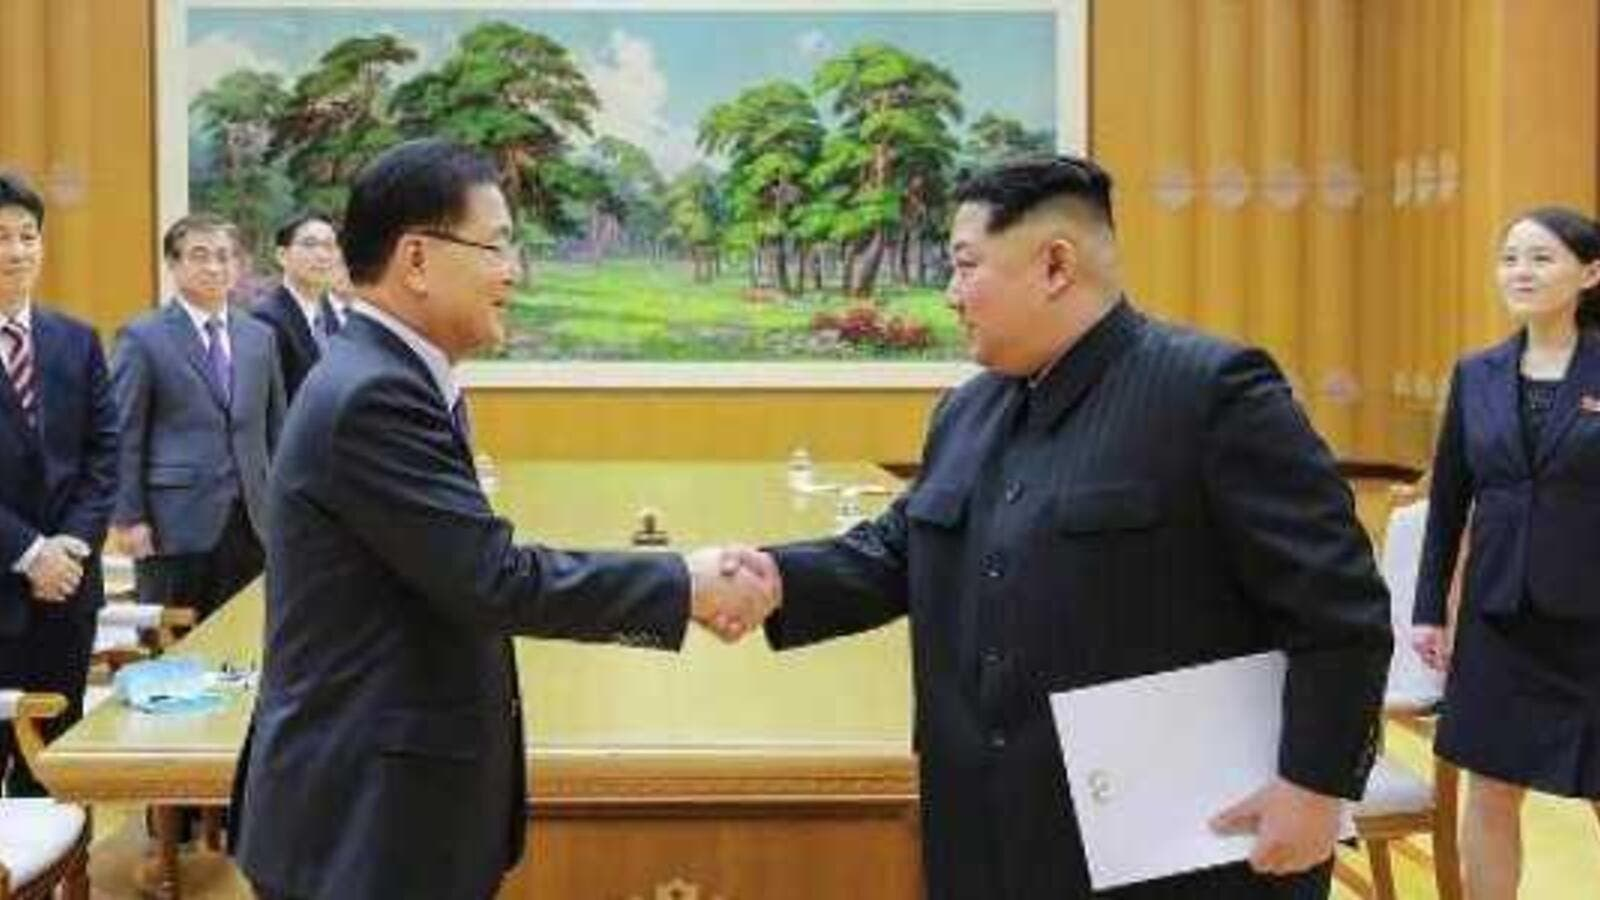 North Korean leader Kim Jong Un shaking hands with South Korean chief delegator Chung Eui-yong (AFP/File Photo)